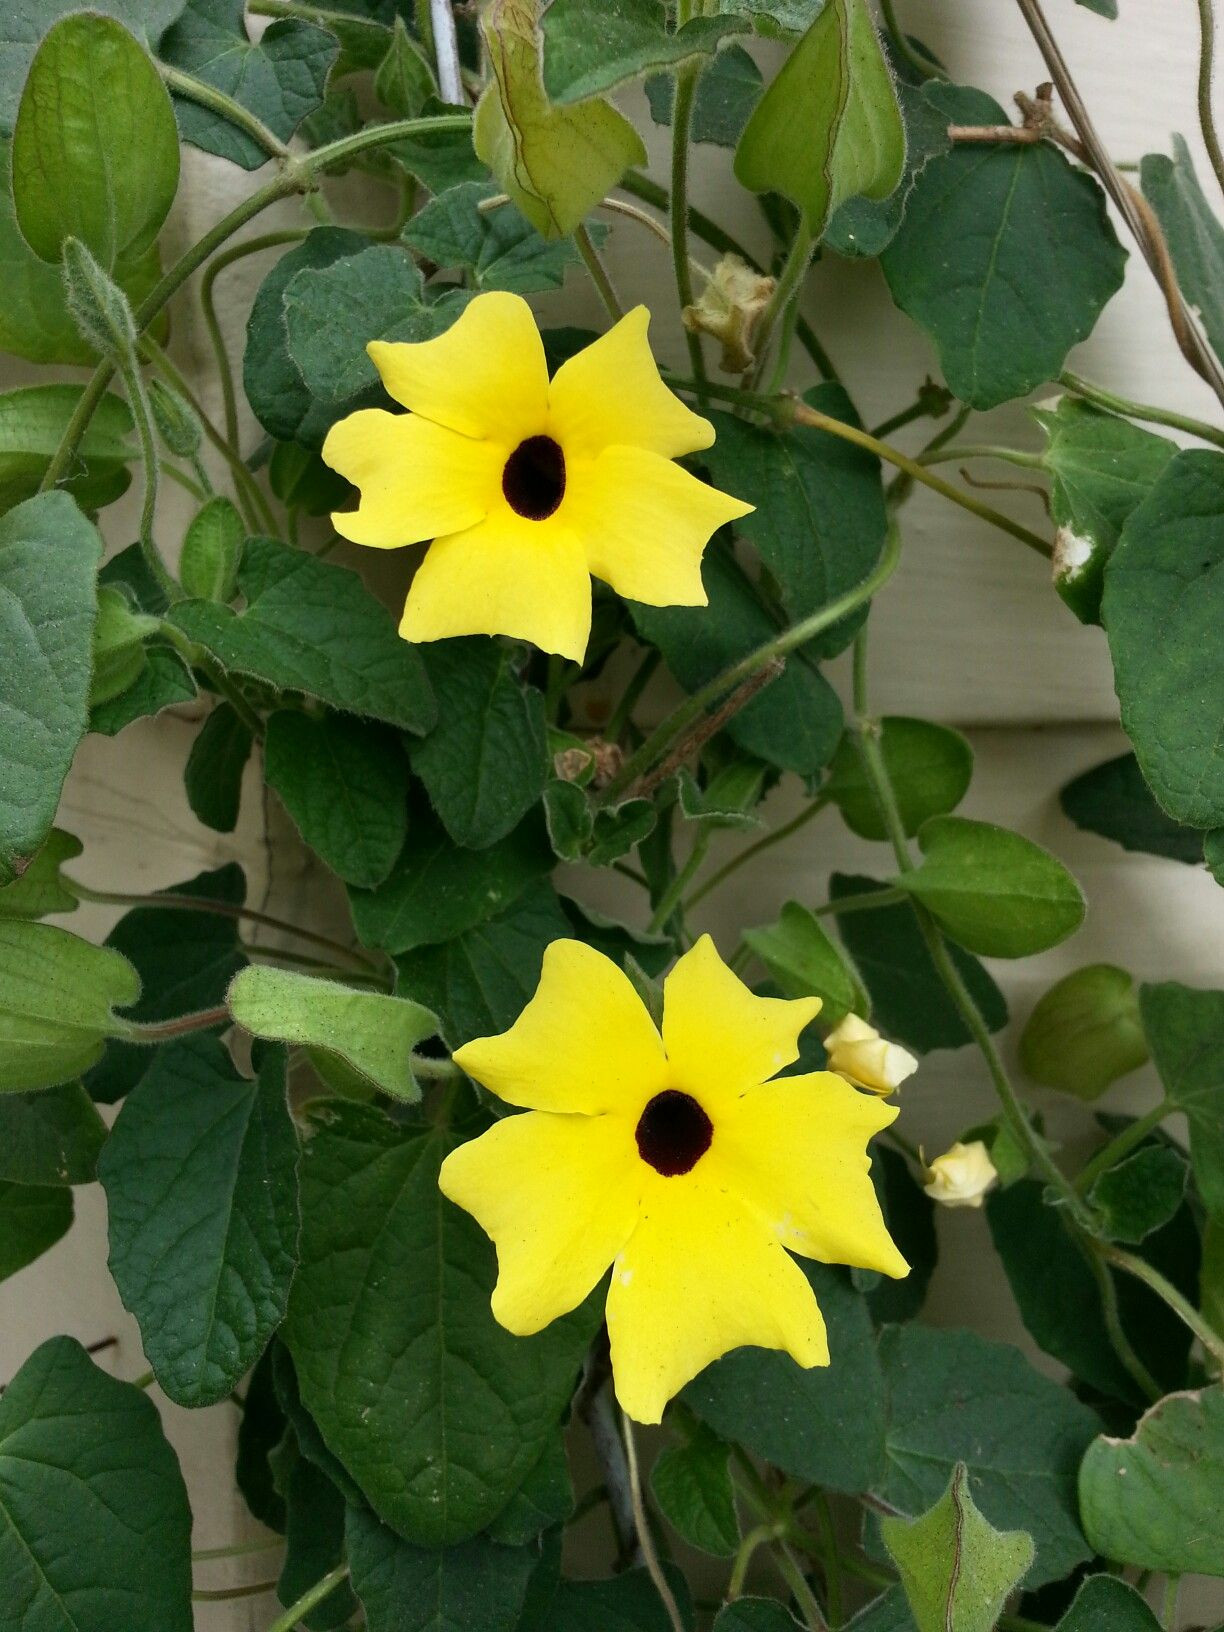 Black Eyed Susan Vines This is in the family Aganthaceae Image taken by sharonlgrace